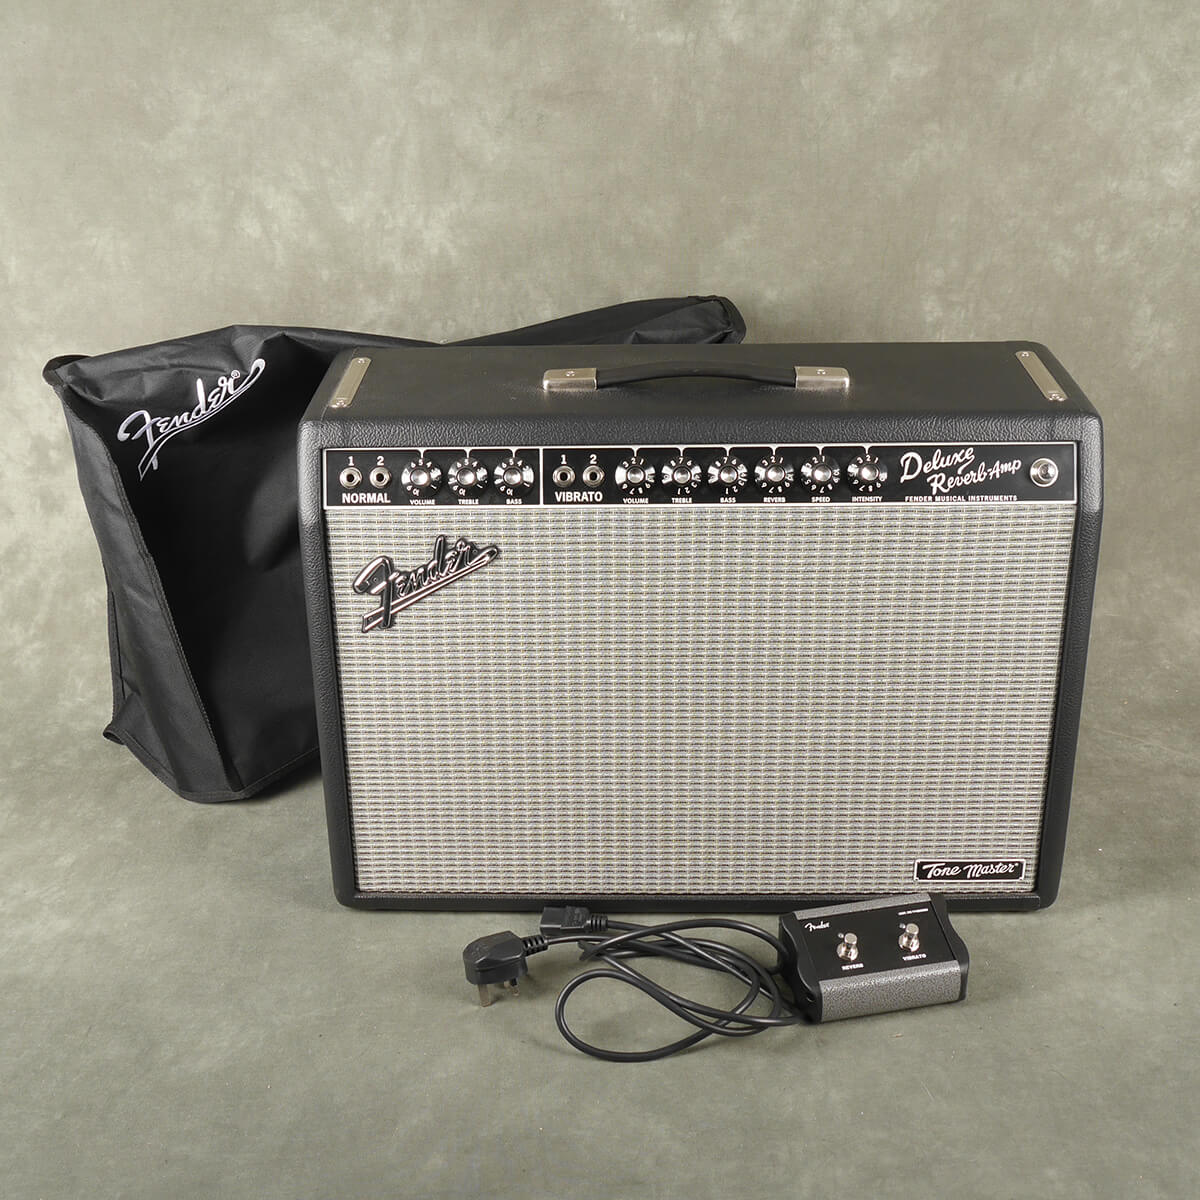 Fender Tonemaster Deluxe Reverb & Footswitch w/Cover - 2nd Hand